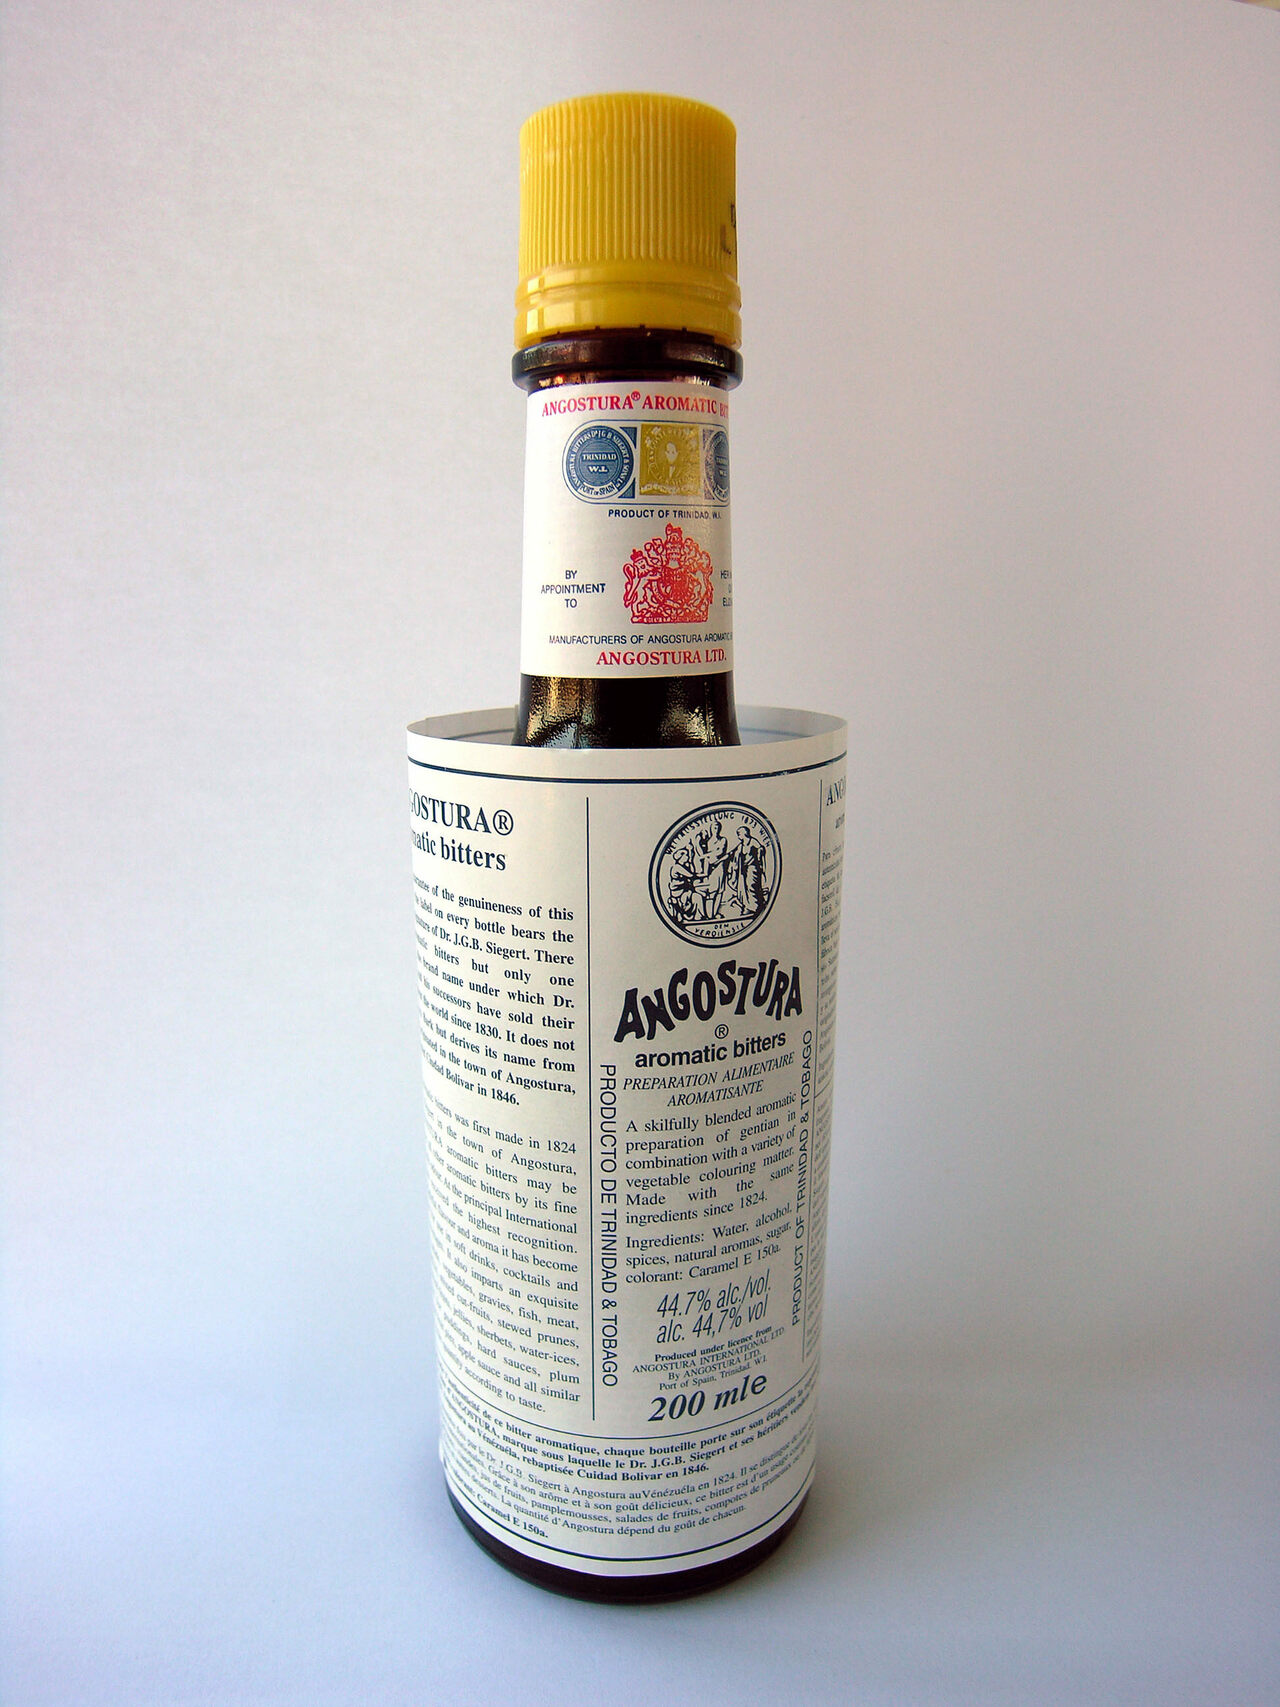 A bottle of Angostura bitters.